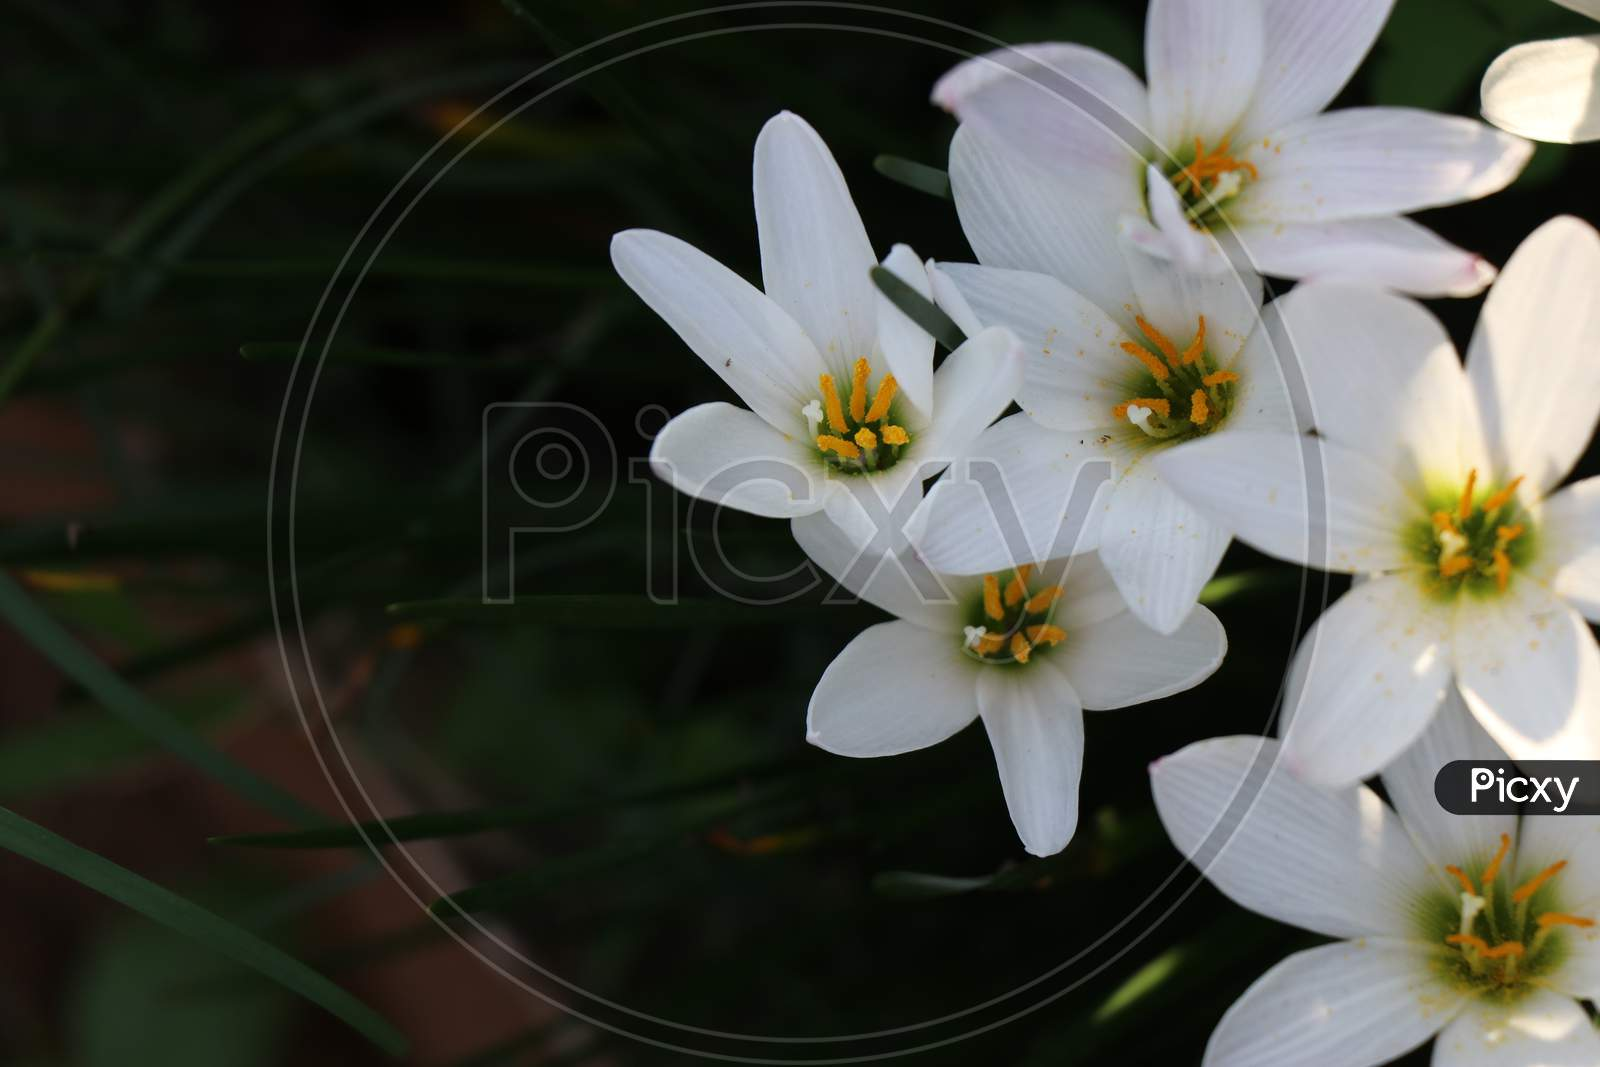 Fully Bloomed White Lilies Which Belongs To Lilium Species